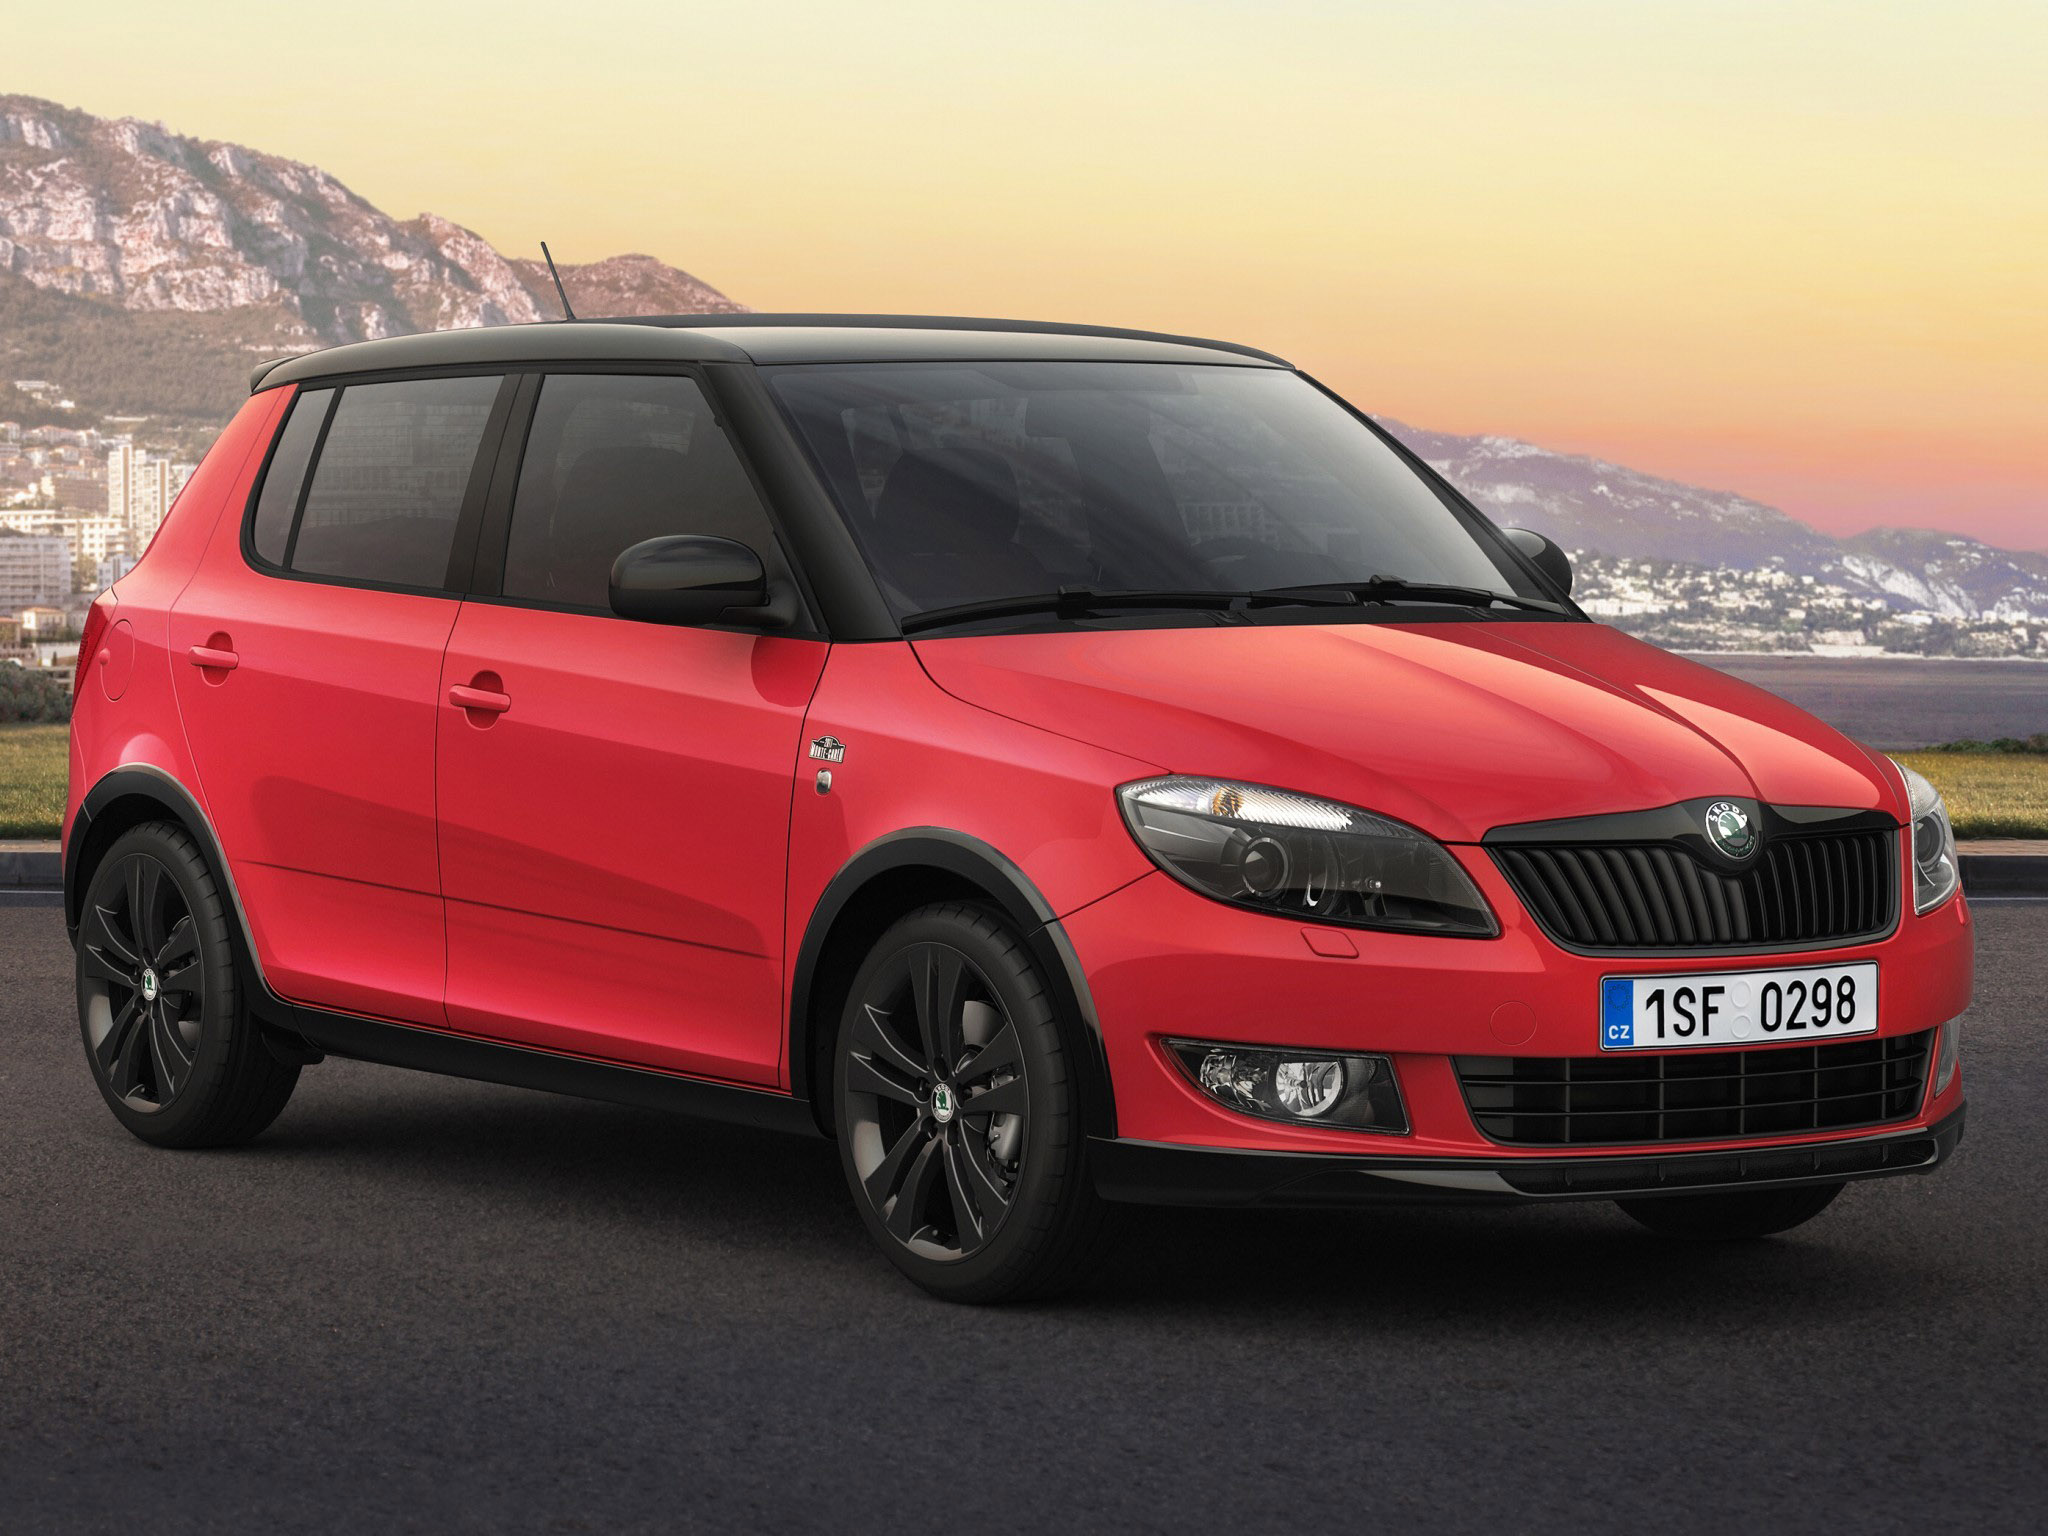 skoda fabia monte carlo 2011 skoda fabia monte carlo 2011 photo 06 car in pictures car photo. Black Bedroom Furniture Sets. Home Design Ideas